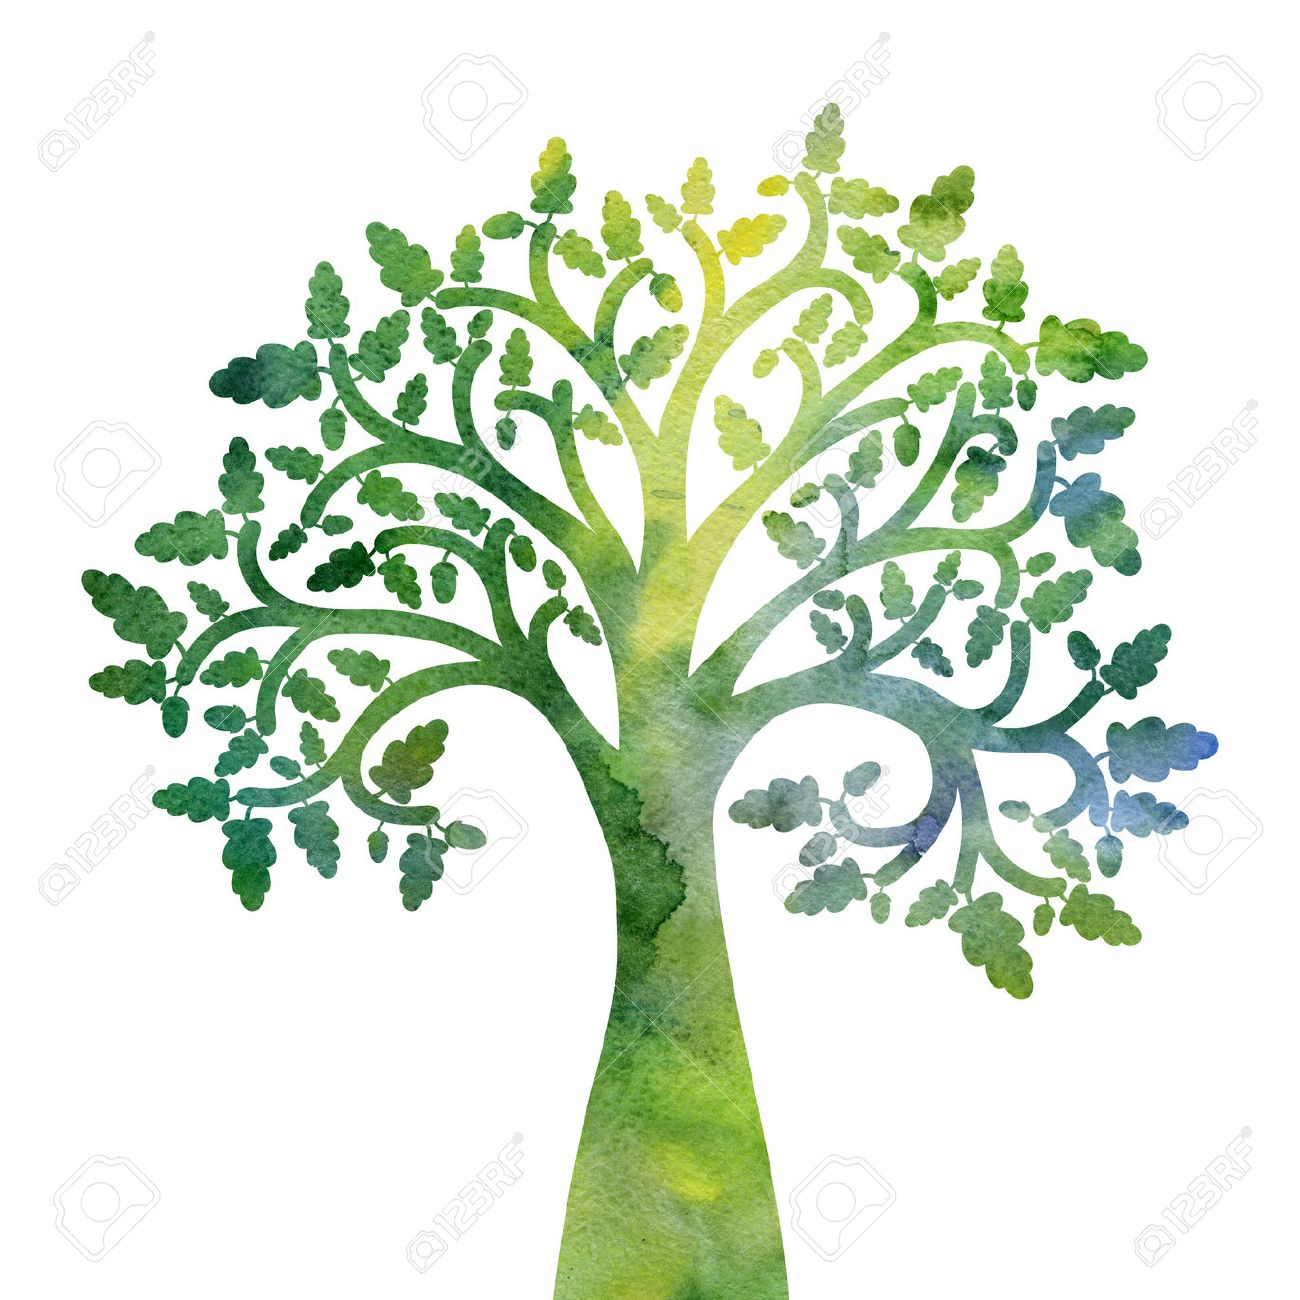 1300x1300 Silhouette Of Oak Tree With Leaves Drawing In Watercolor, Hand